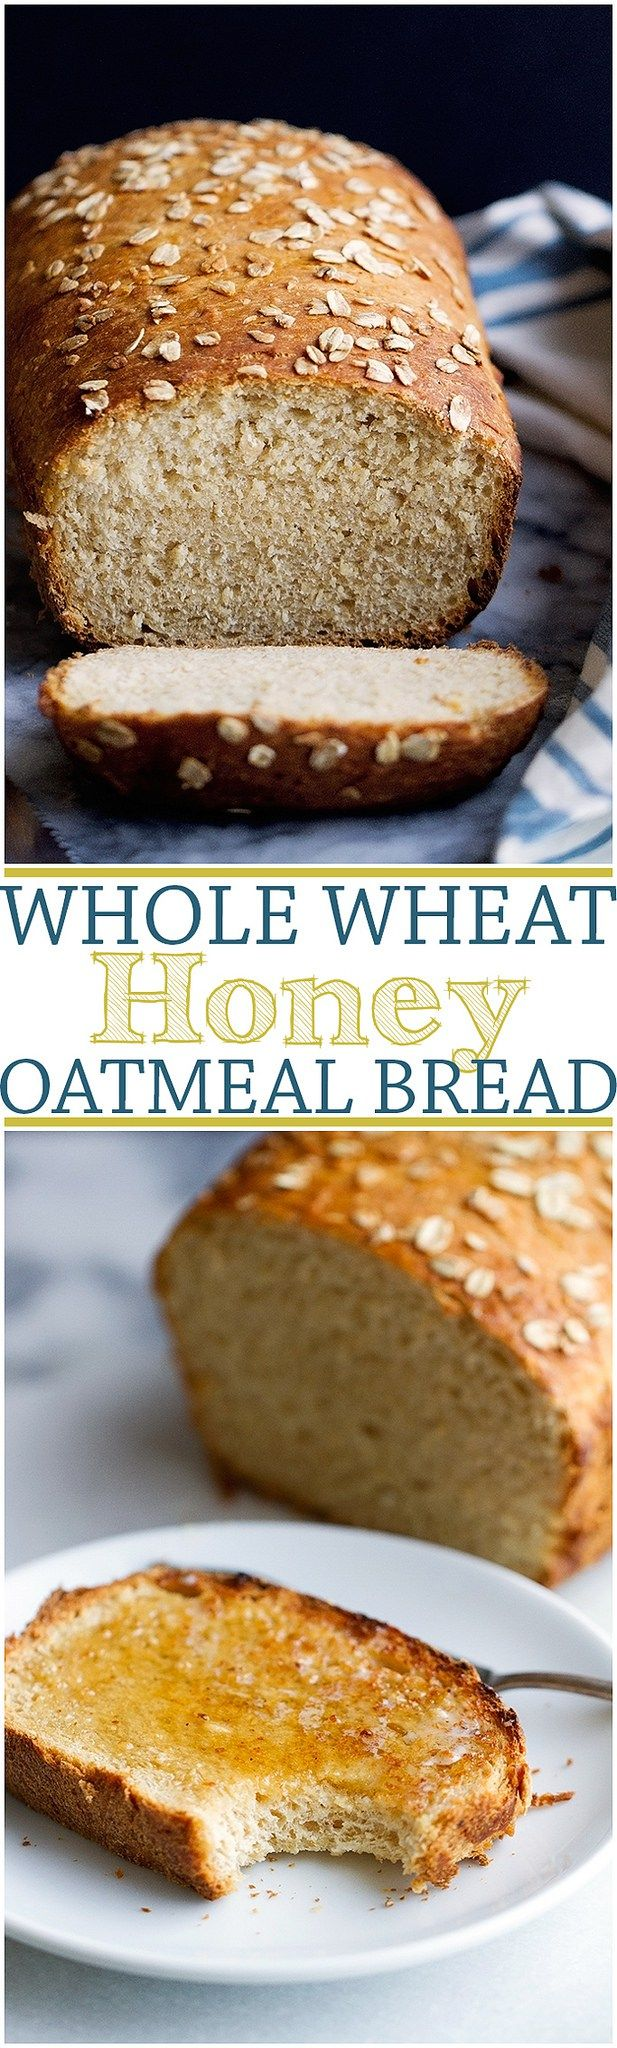 Whole Wheat Honey Oatmeal Bread - check out the step-by-step pictures and learn how to make this bread. NO REFINED SUGARS and so easy to make at home! #honeyoatbread #bread #homemadebread | Littlespicejar.com